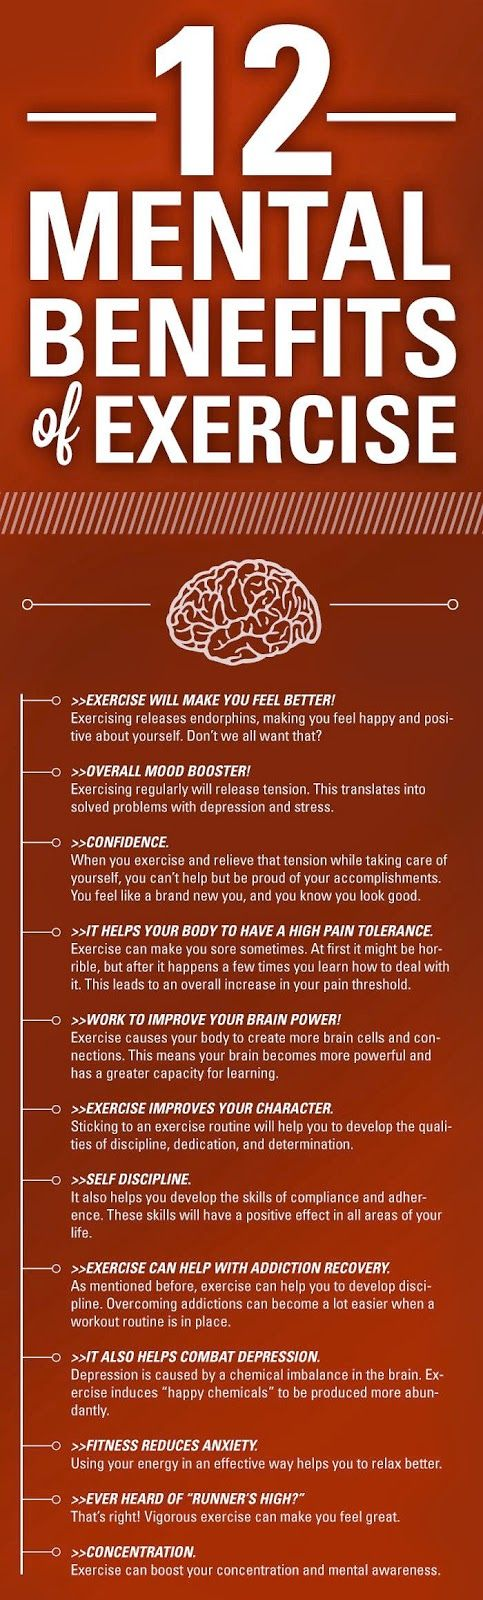 Exercise as a natural remedy for tension, anxiety, depression, pain and brain health -  12 Mental Benefits of Exercise [Infographic]